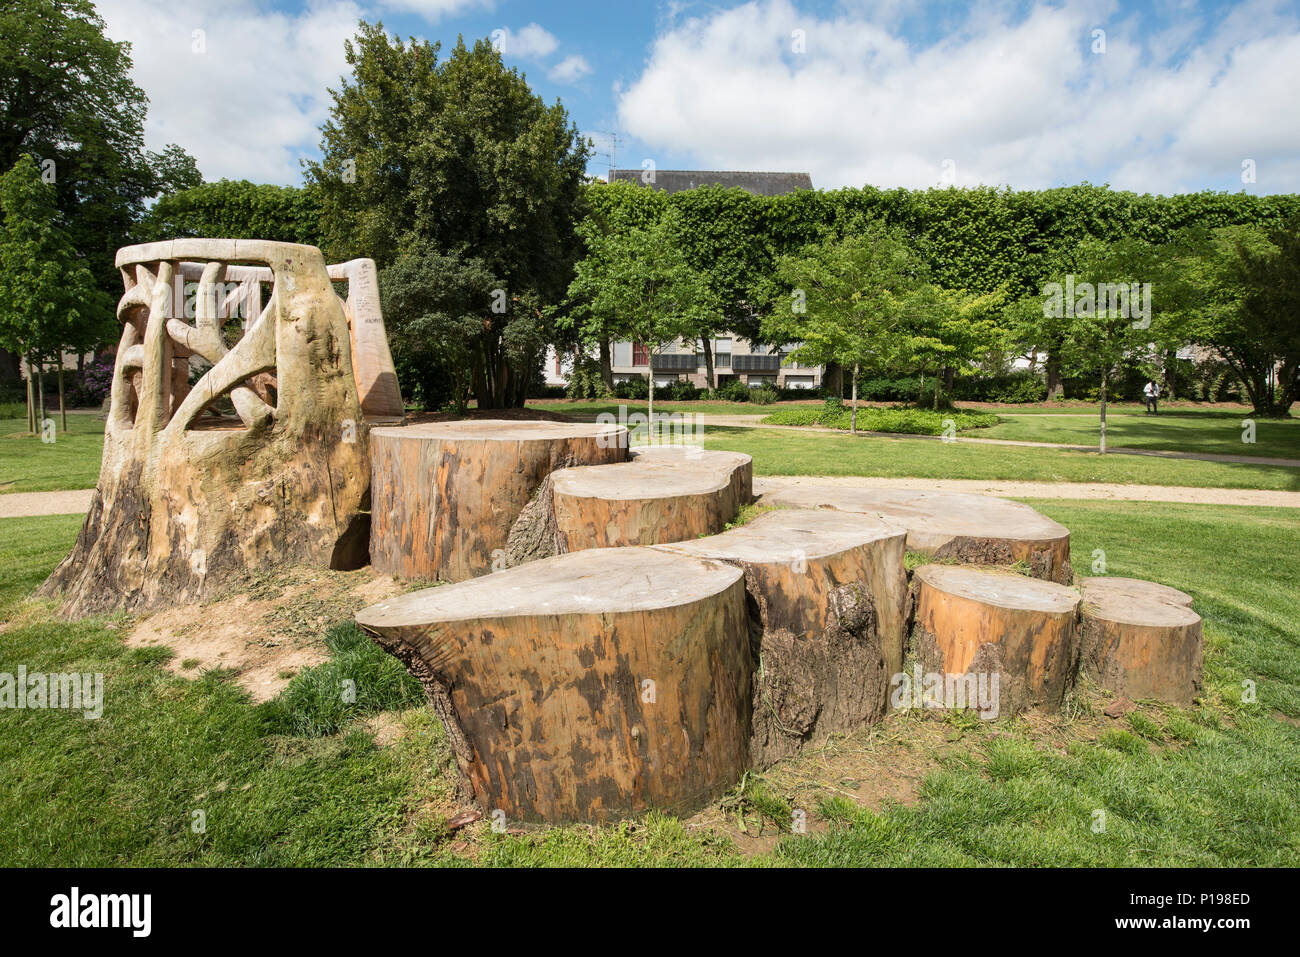 Pulpit made from tree stumps in the grounds of Imperial church of Saint Joseph ( Eglise impériale Saint-Joseph ), Pontivy, Morbihan, Brittany, France. - Stock Image